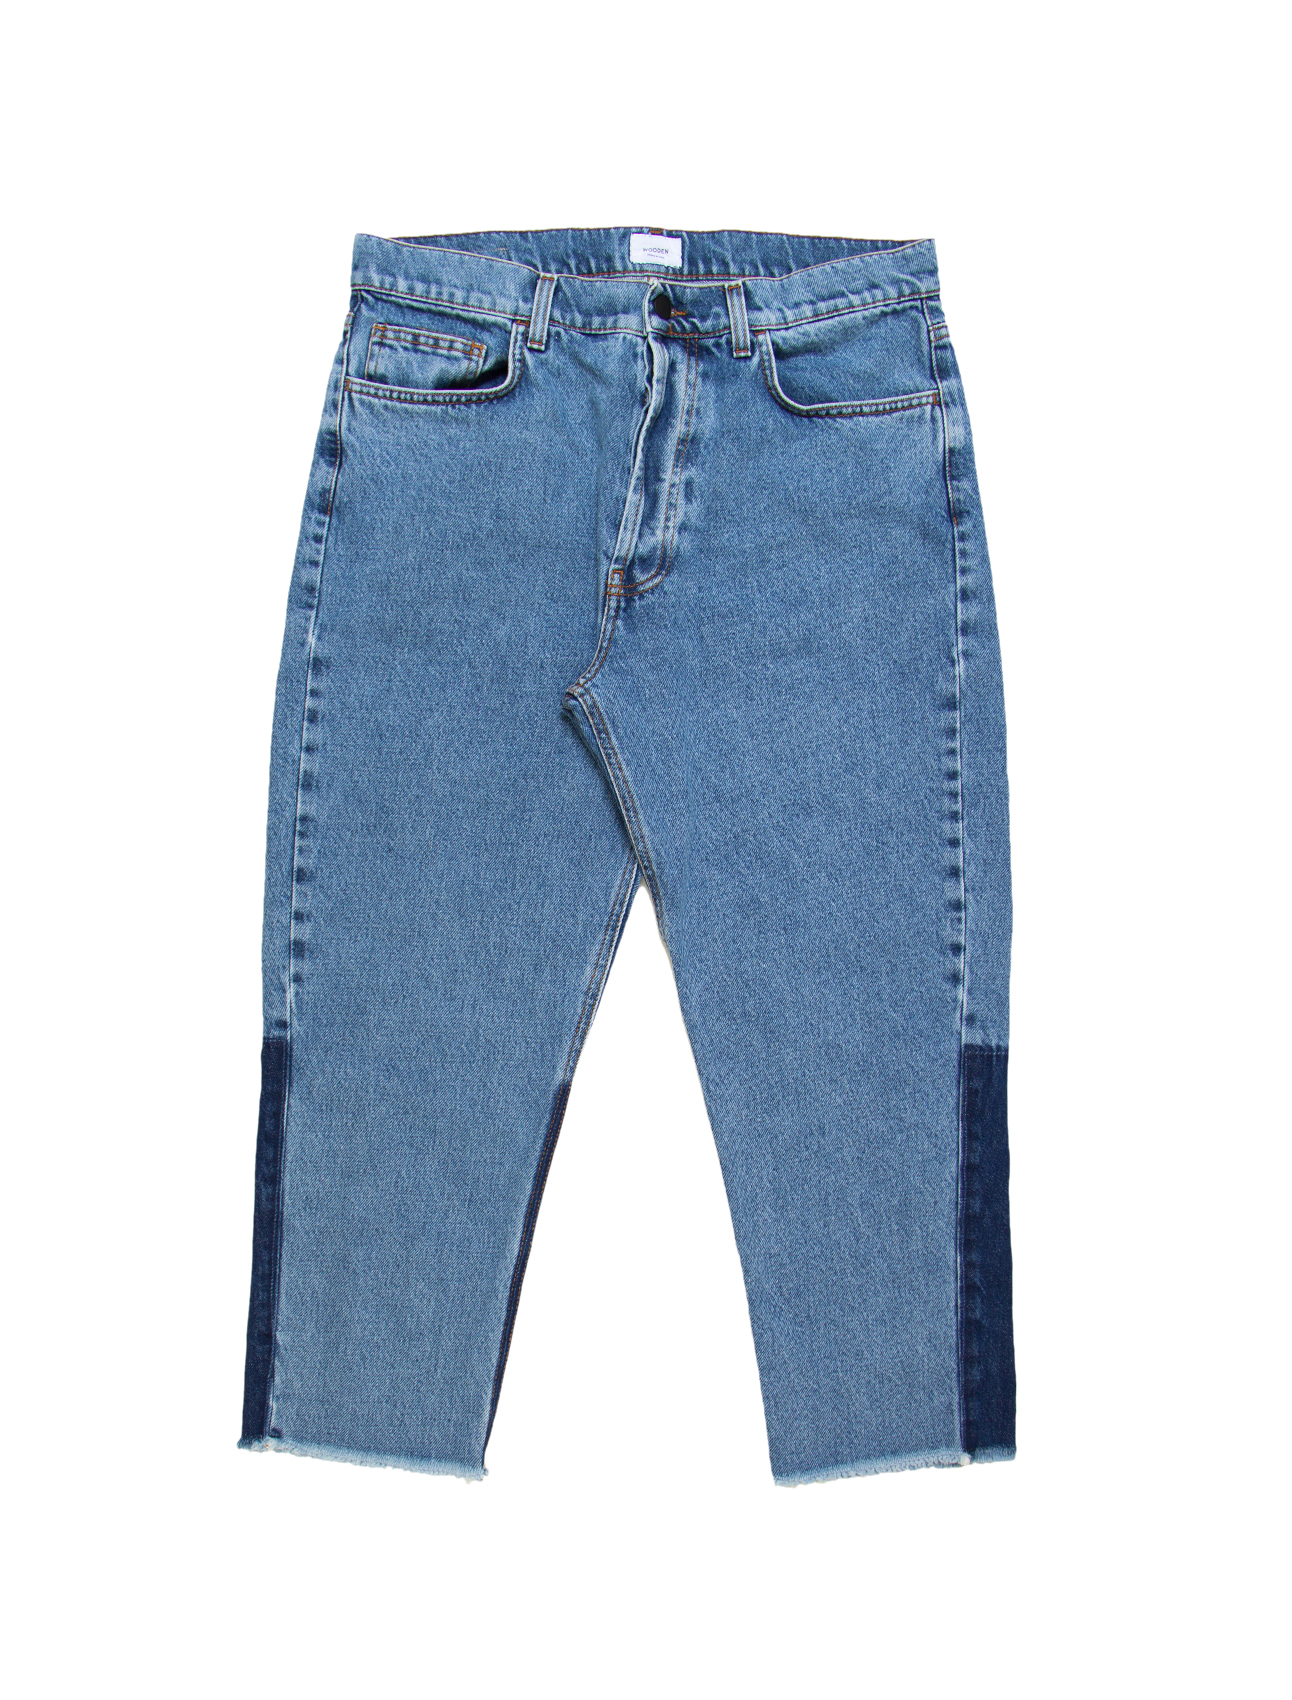 Jeans Original Blue Back | Wooden Store